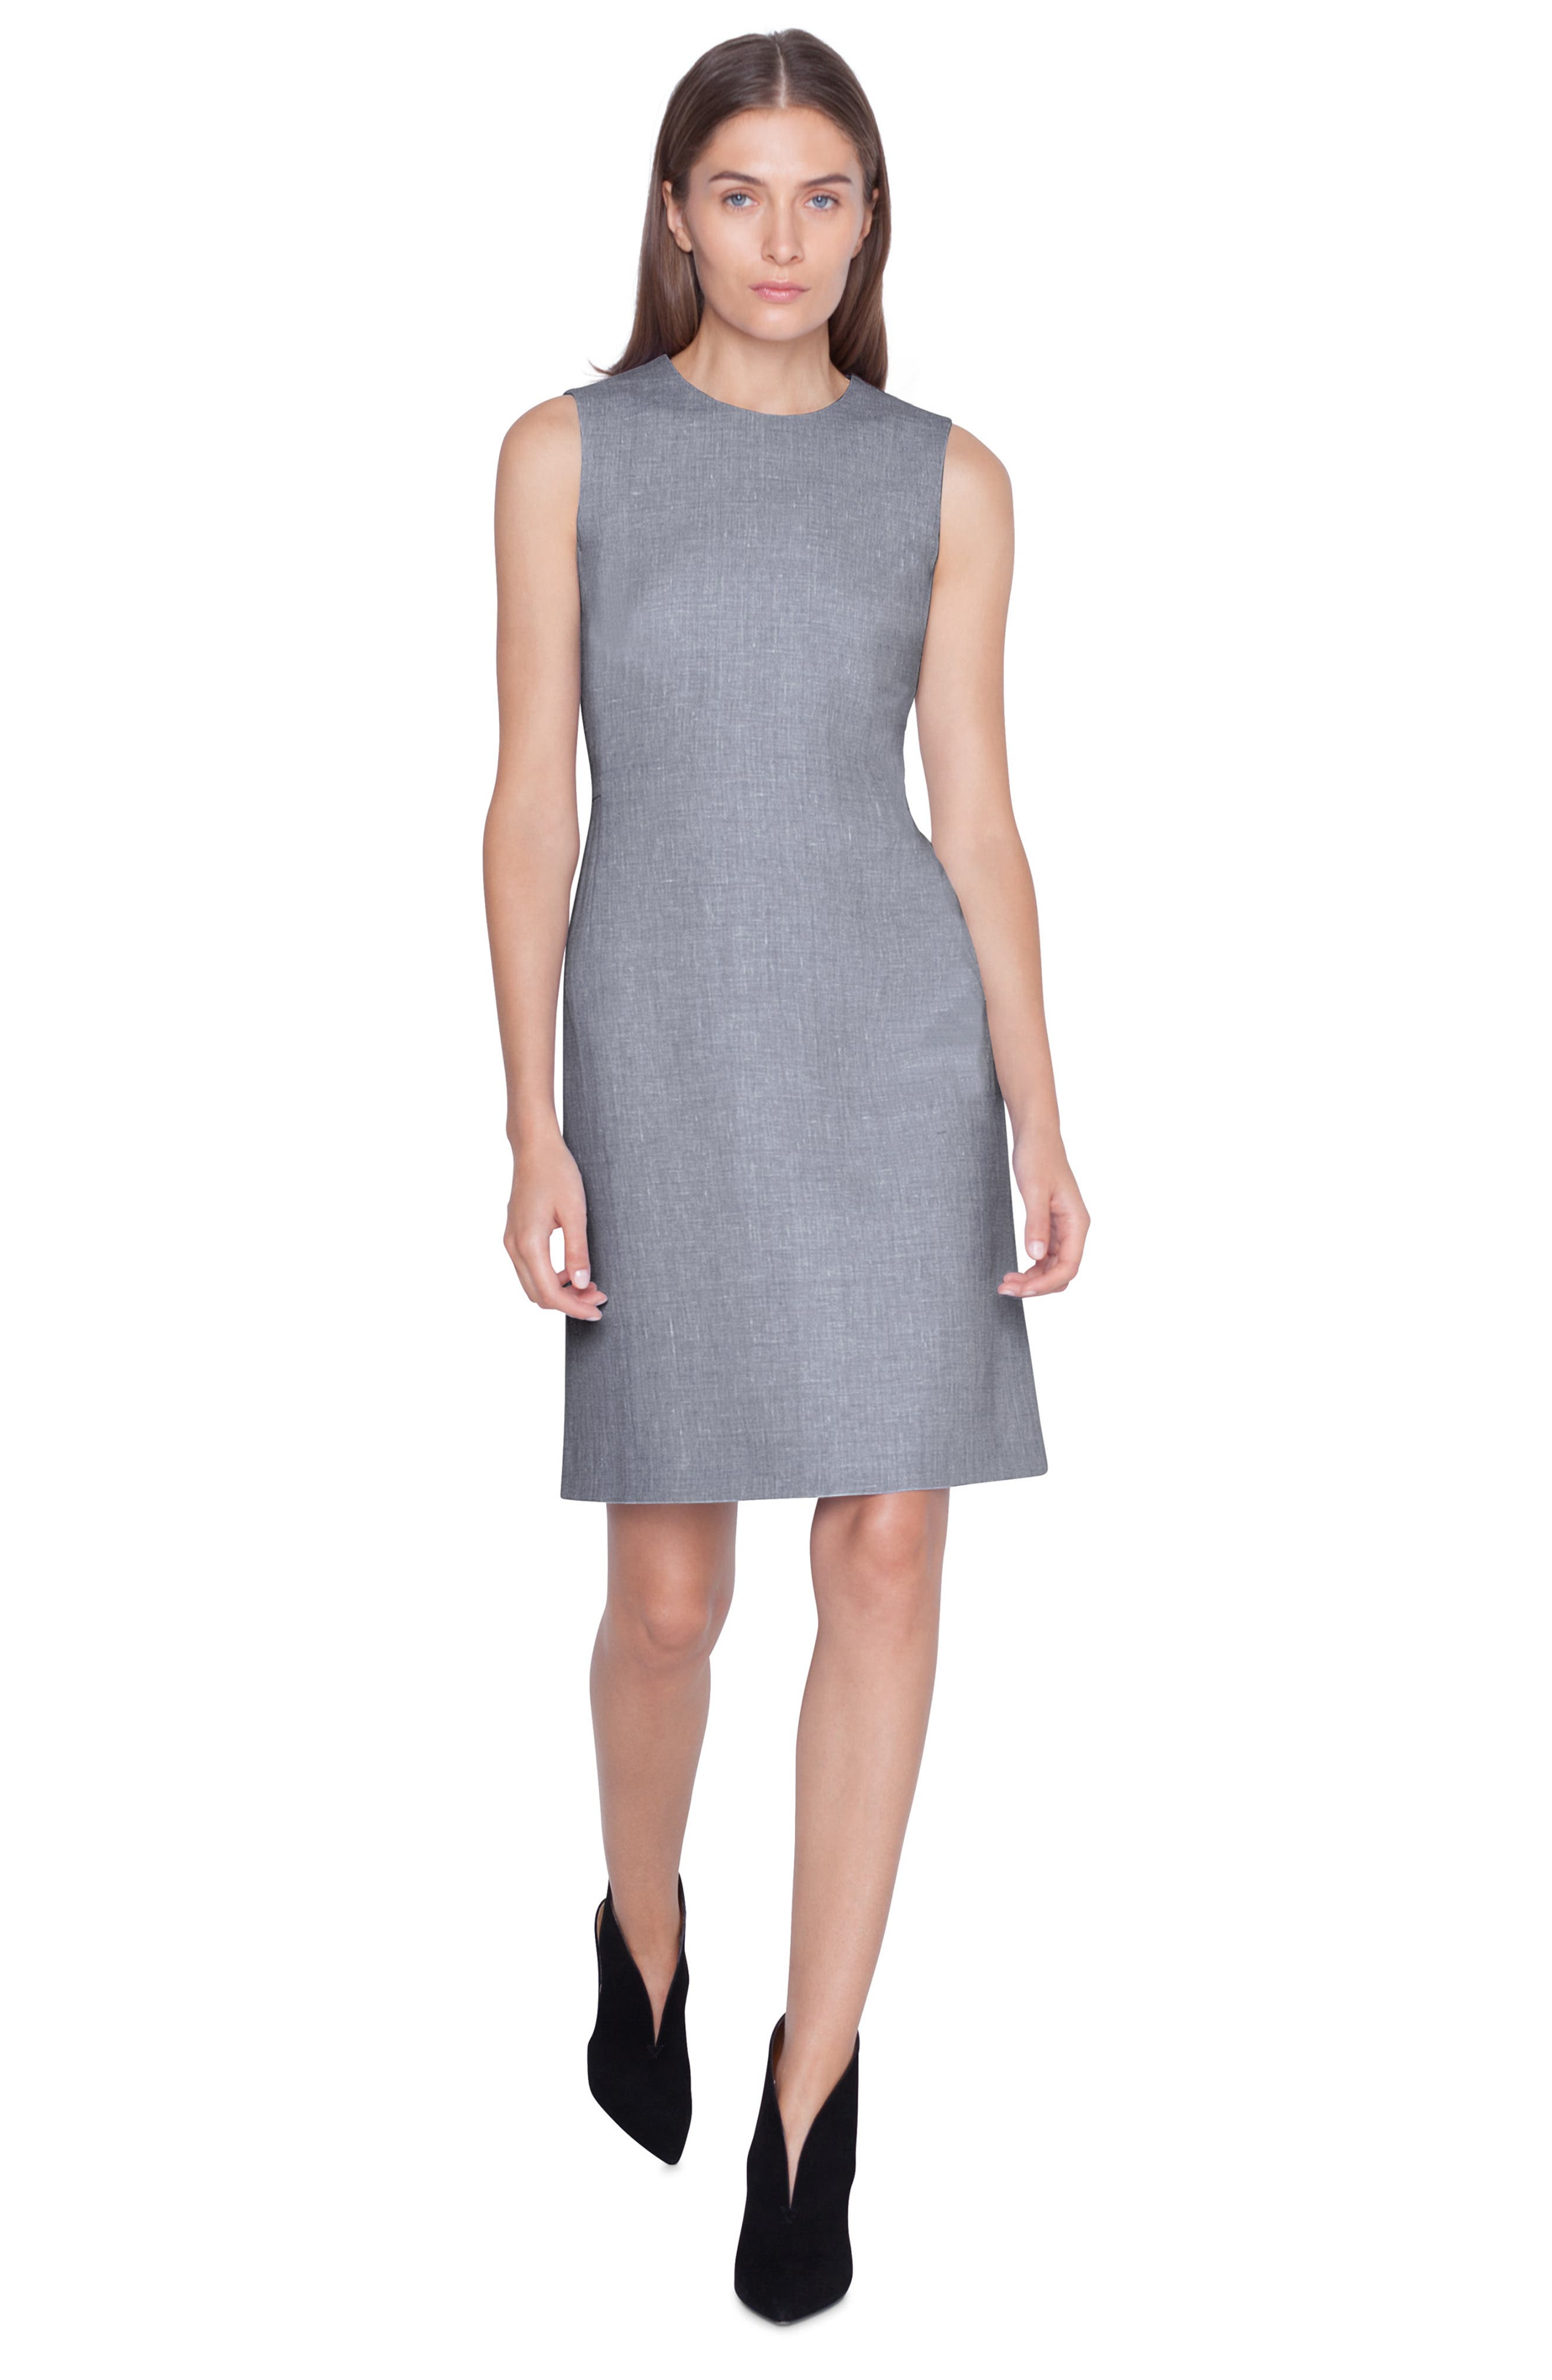 AKRIS,                             Linen & Wool Seamed Sheath Dress,                             Alternate thumbnail 3, color,                             TITAN